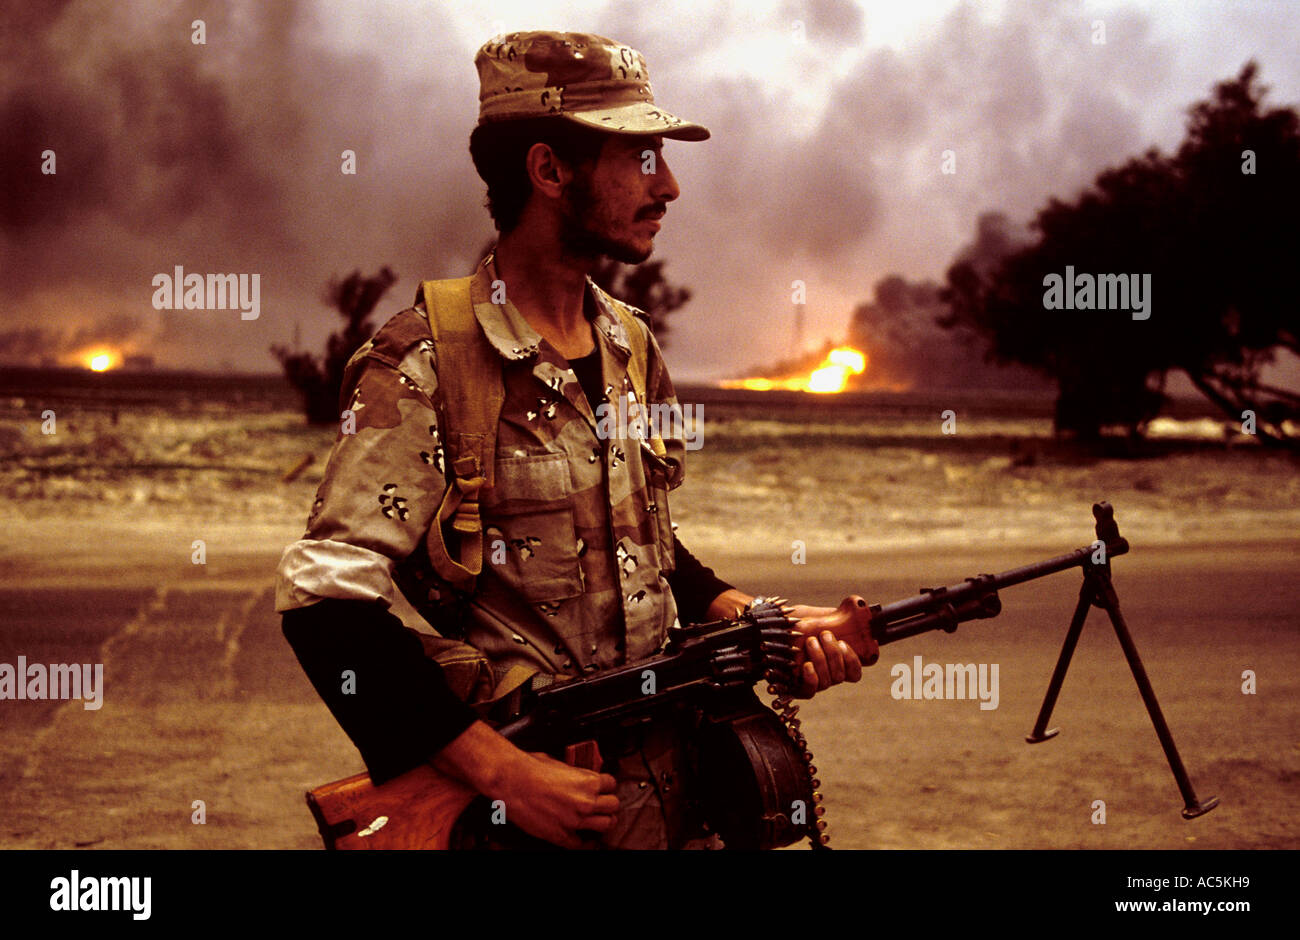 Oil fires near the Iraqi border in war torn kuwait 1991 - Stock Image